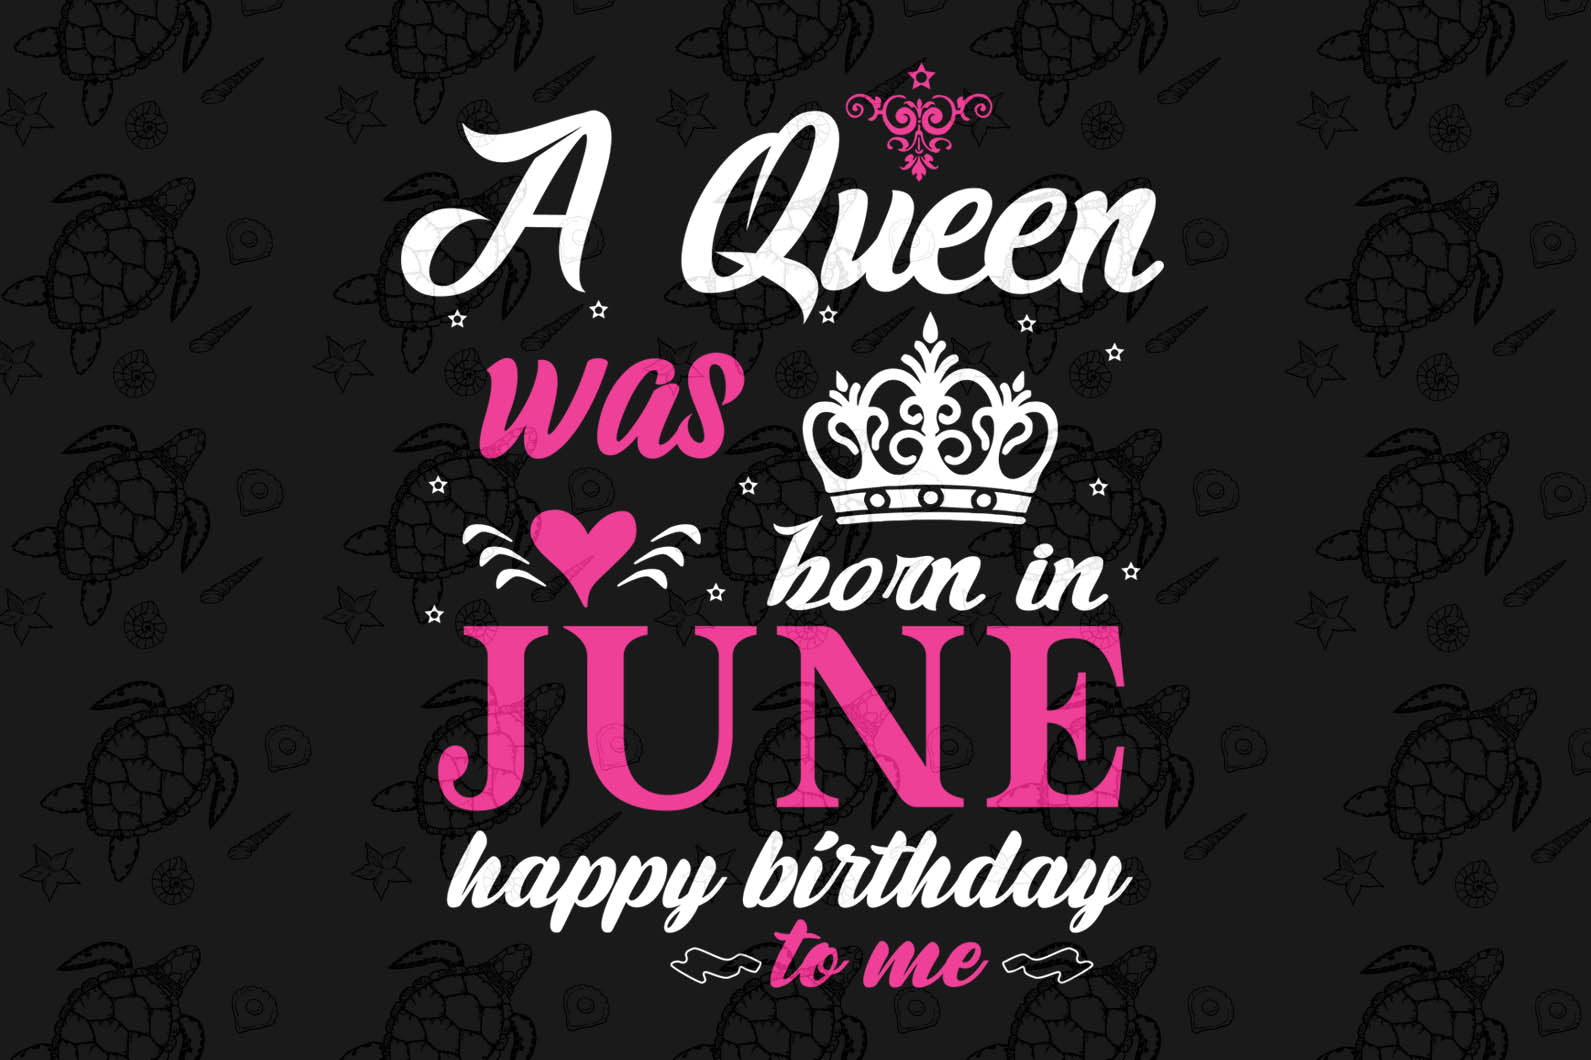 A queen was born in June, retro vintage shirt, born in June, June svg, June birthday, June birthday gift, birthday shirt, queen svg, girl gift, girl shirt, svg cut files, svg clipart, silhouette svg, cricut svg files, decal and vinyl,